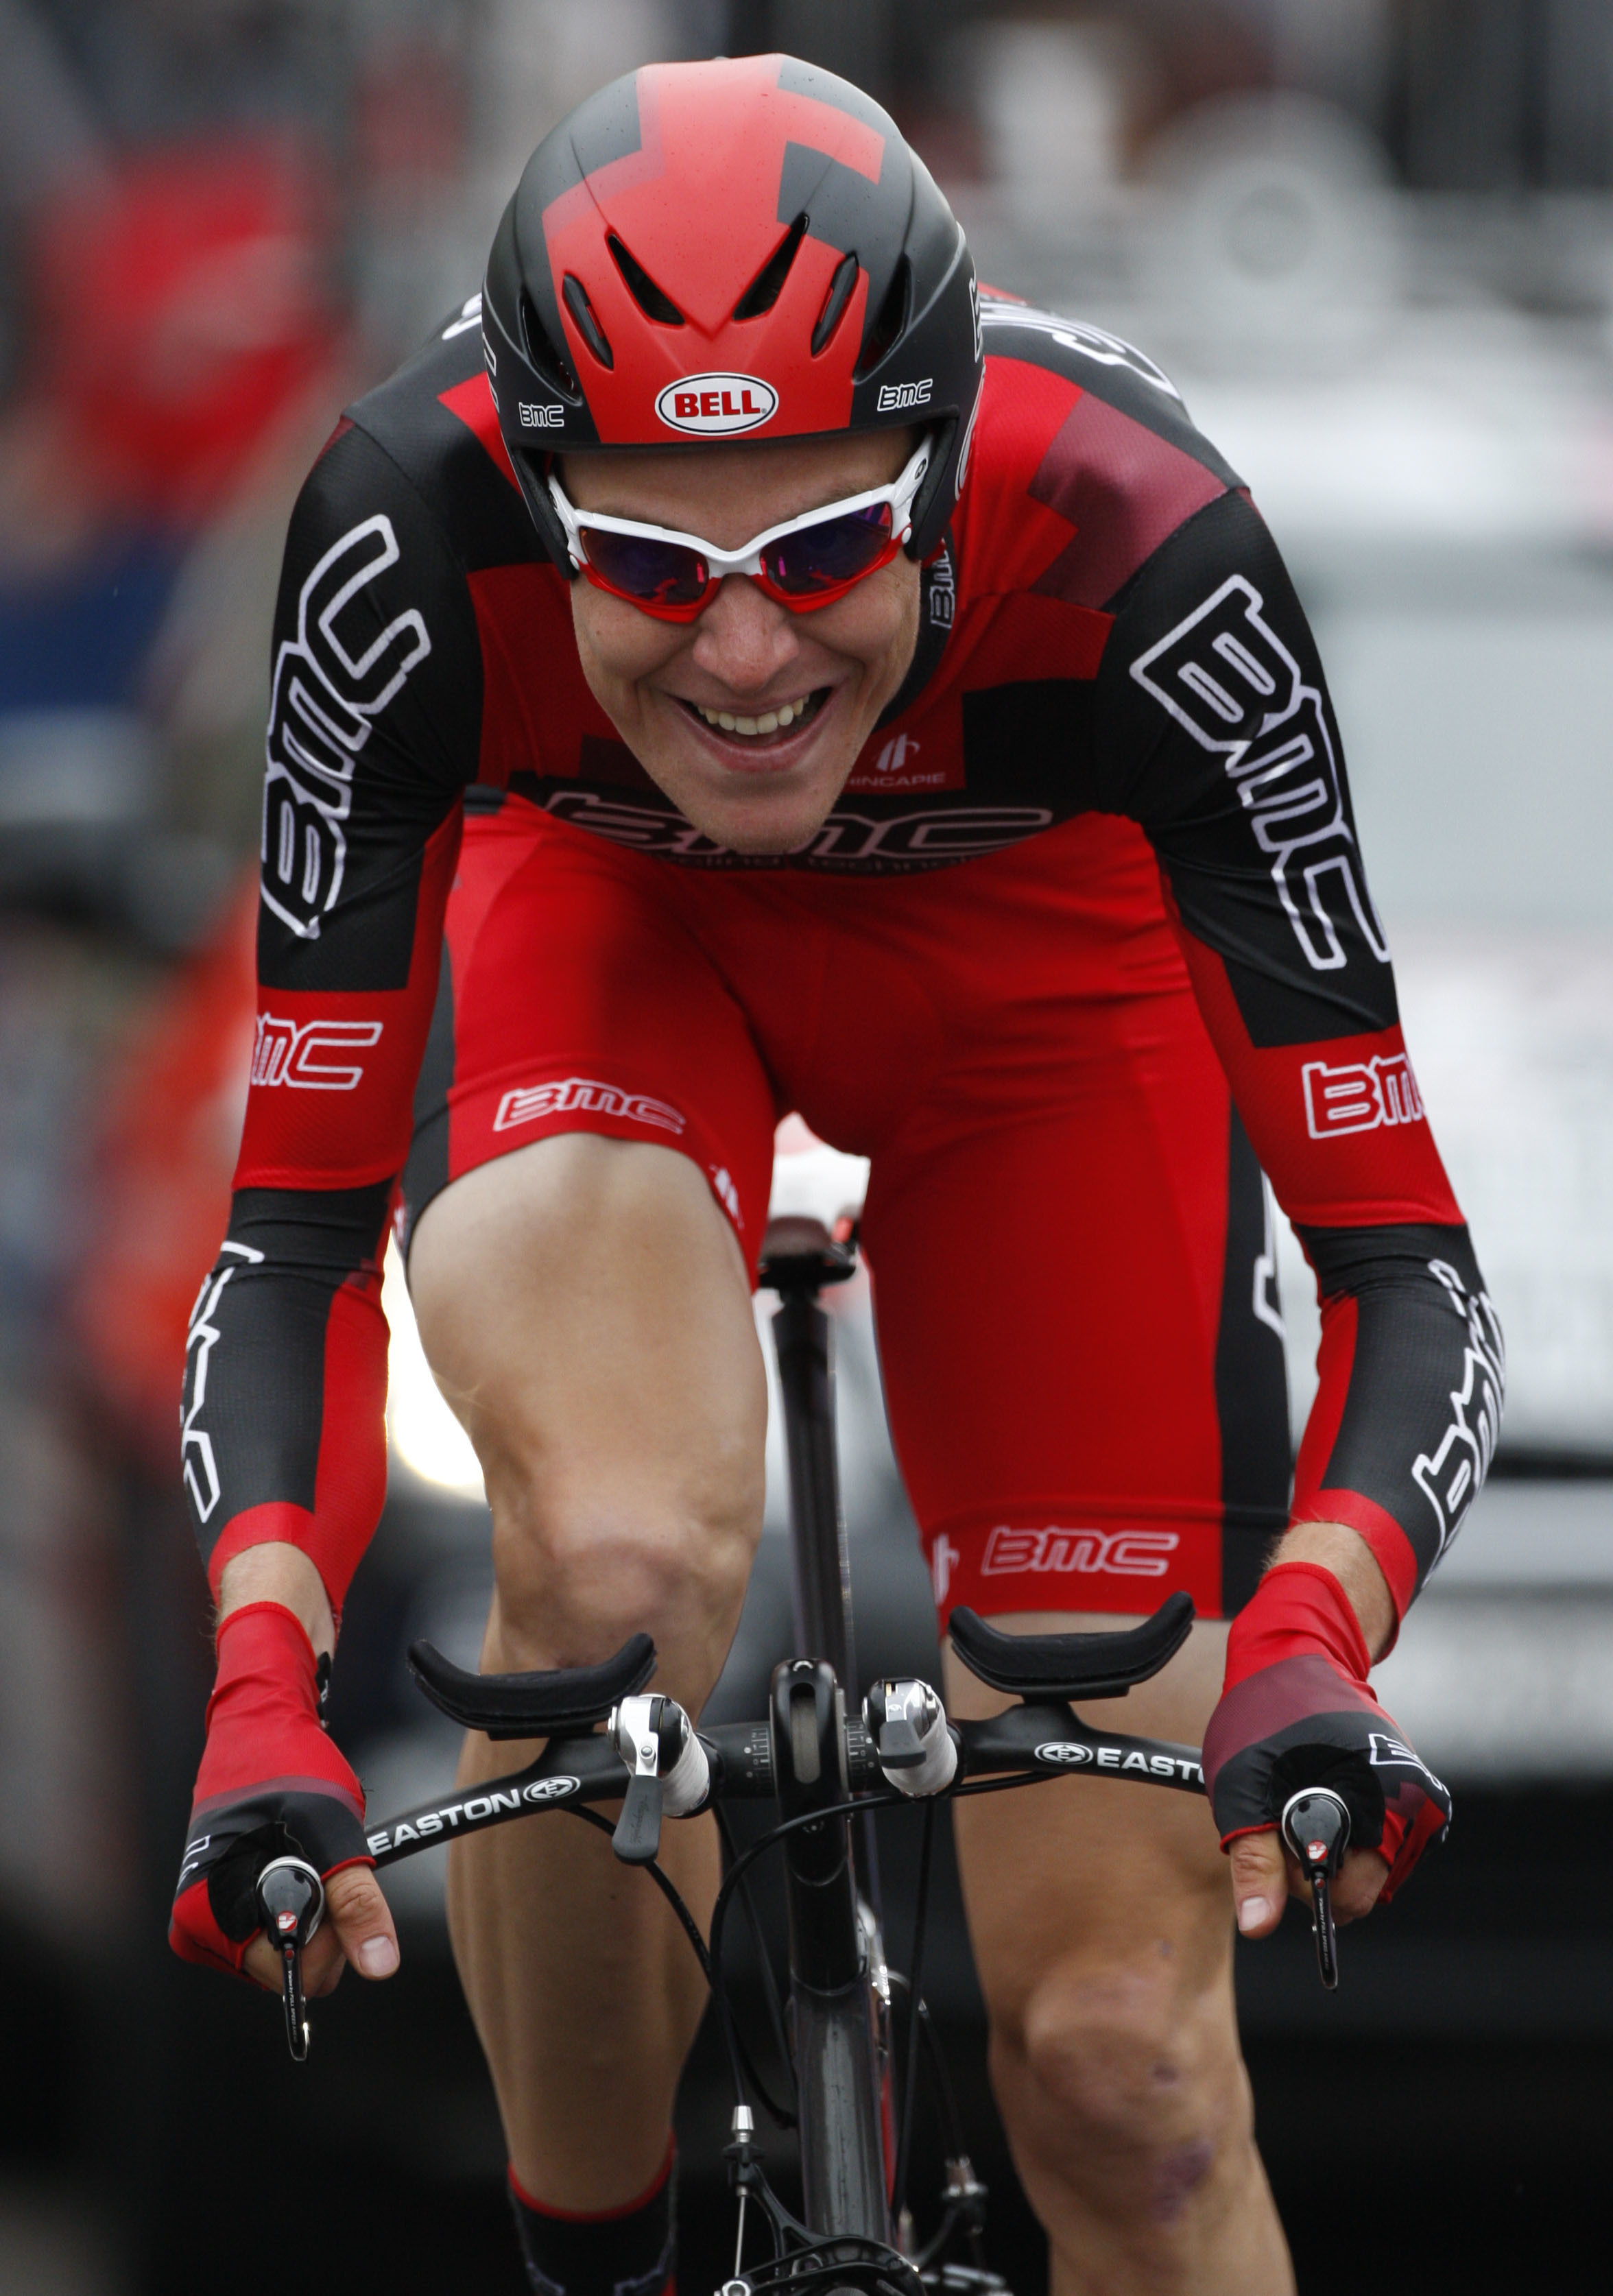 FILE - In this May 8, 2010, file photo, Brent Bookwalter of the United States races to the second place during the opening leg of the Giro d'Italia, Tour of Italy cycling race, in Amsterdam. Bookwalter is hoping to get one of only two spots the Americans